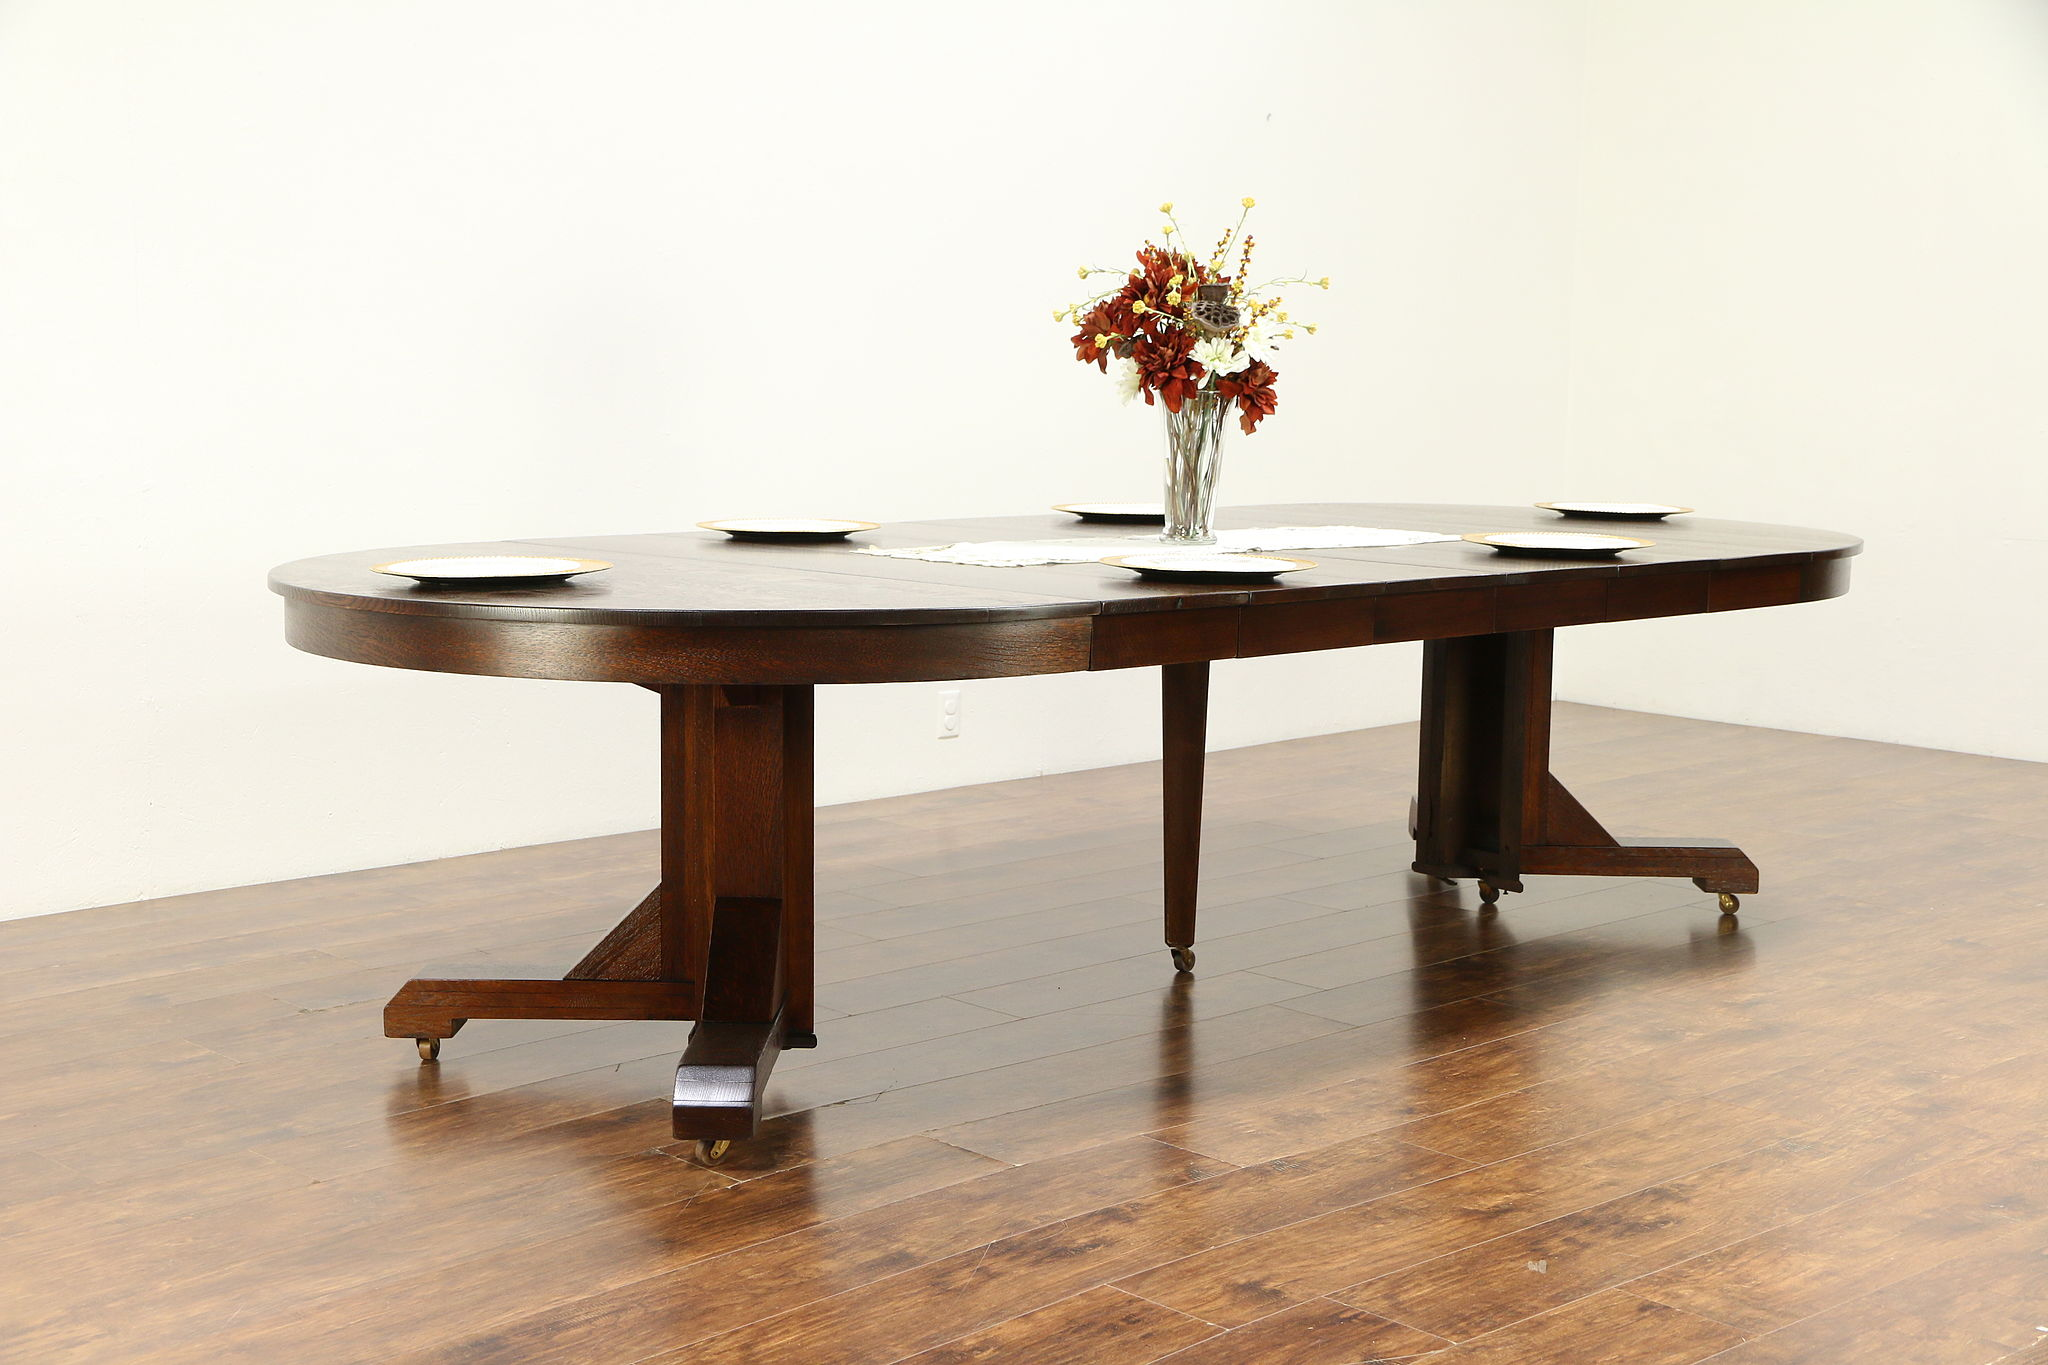 Sold Arts Crafts Mission Oak 56 Round Craftsman Antique Dining Table 10 7 30344 Harp Gallery Antiques Furniture